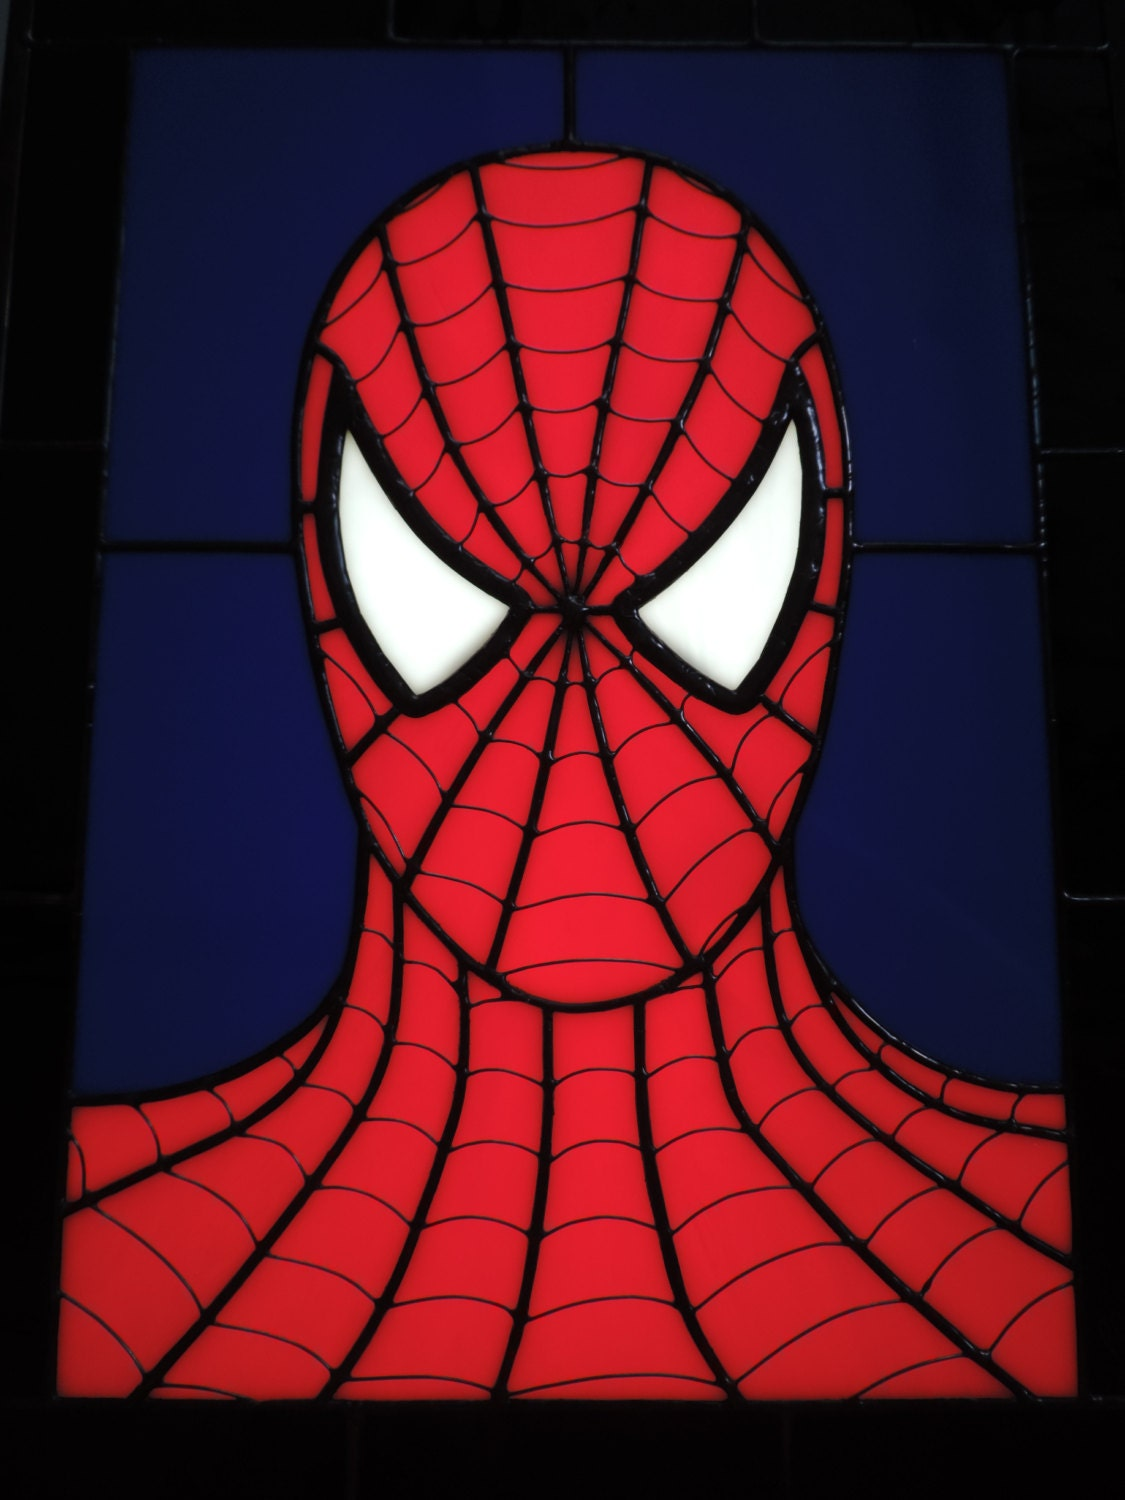 Spiderman pop art - photo#10